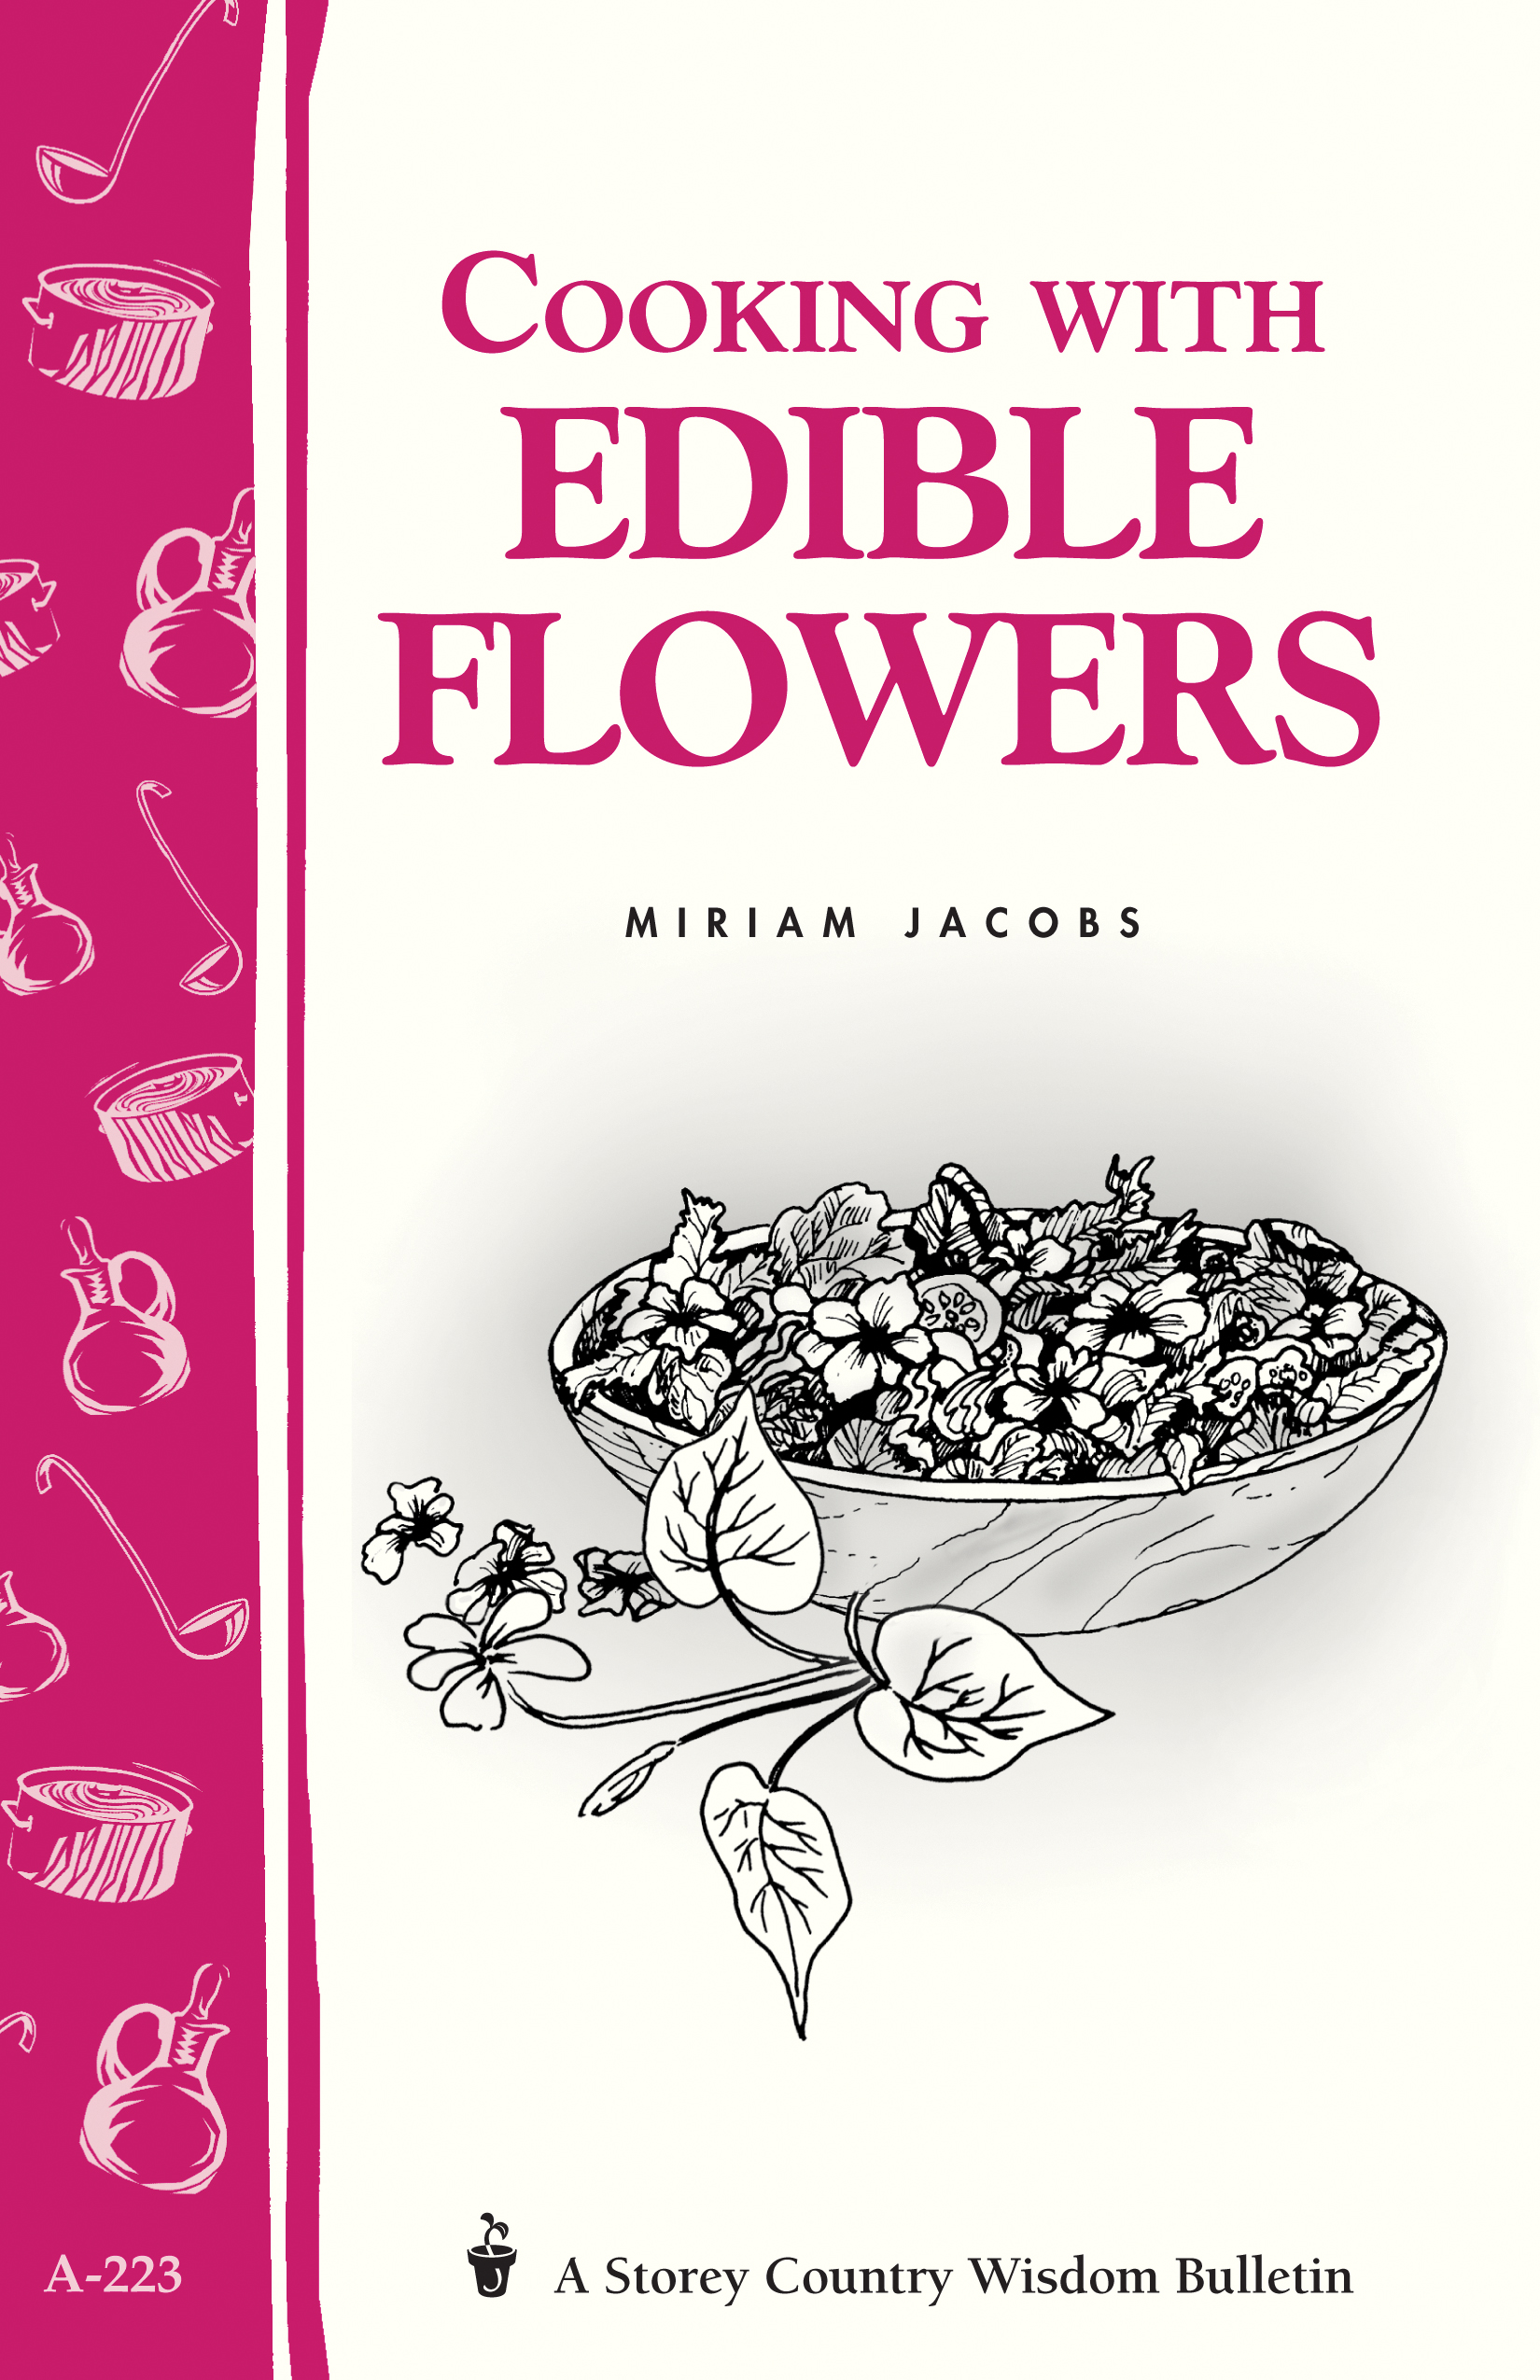 Cooking with Edible Flowers Storey Country Wisdom Bulletin A-223 - Miriam Jacobs